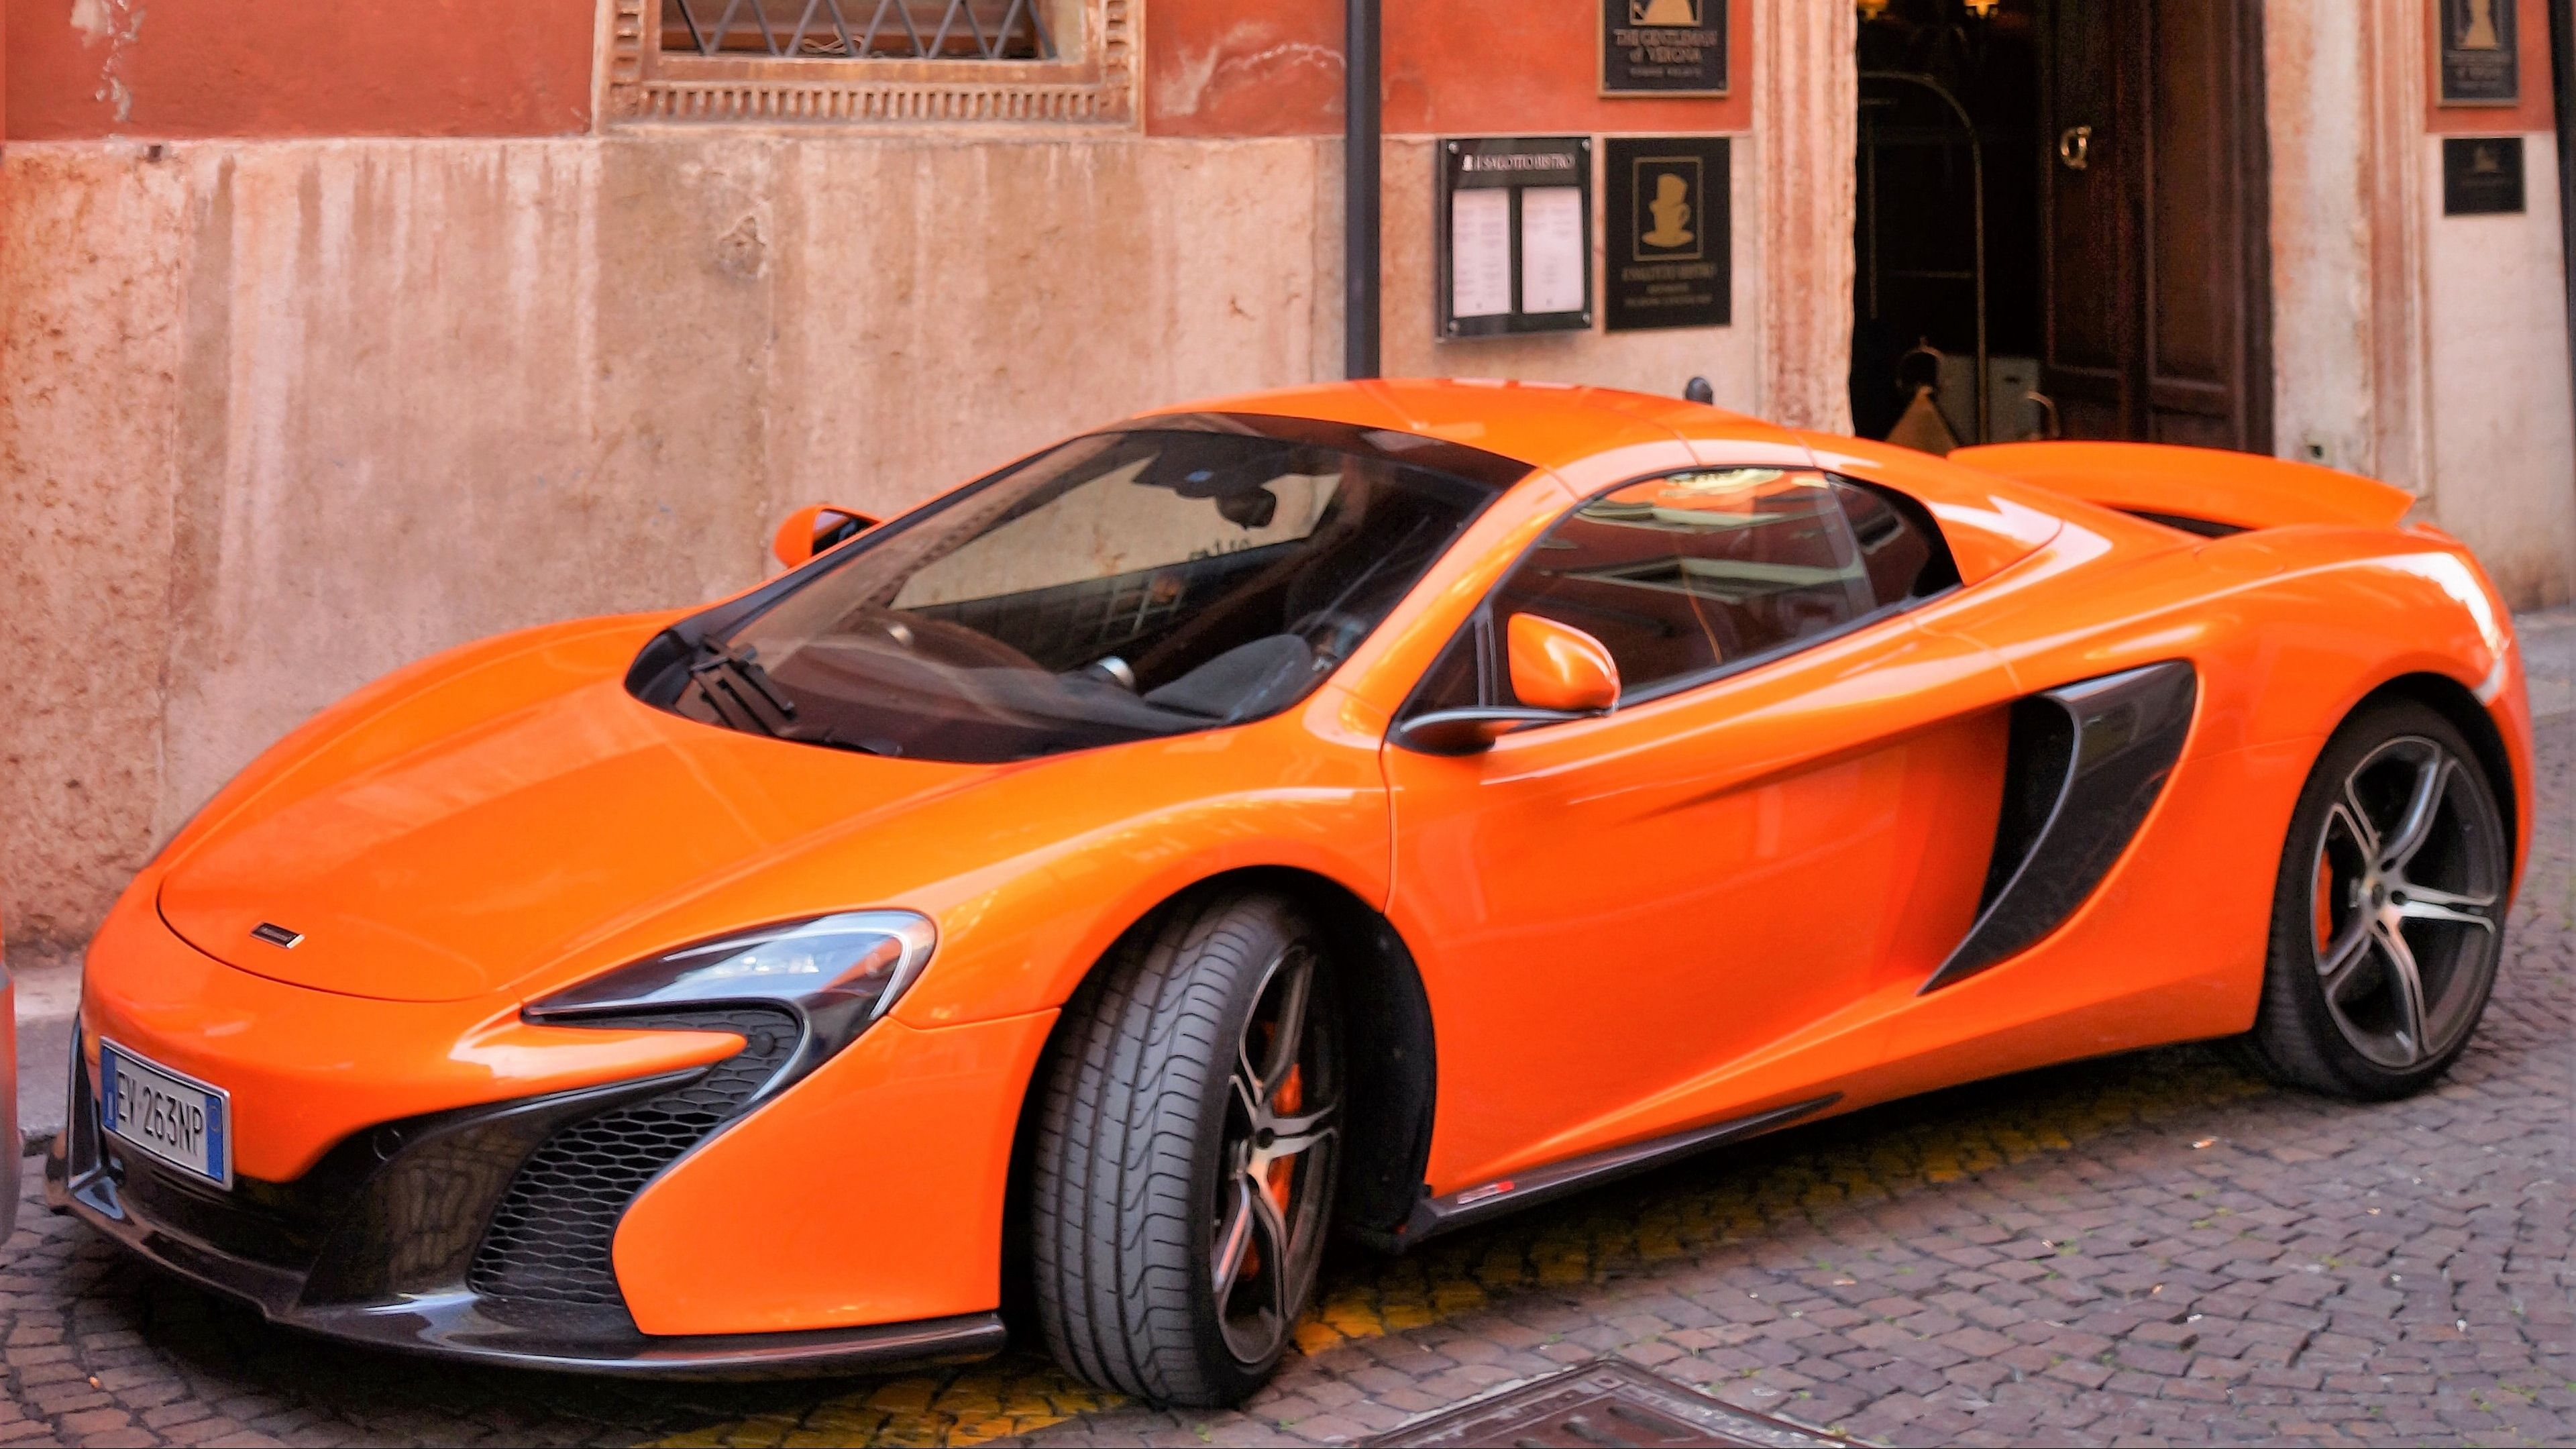 Wallpaper 4k Mclaren Supercar Orange Side View 4k Mclaren Orange Supercar